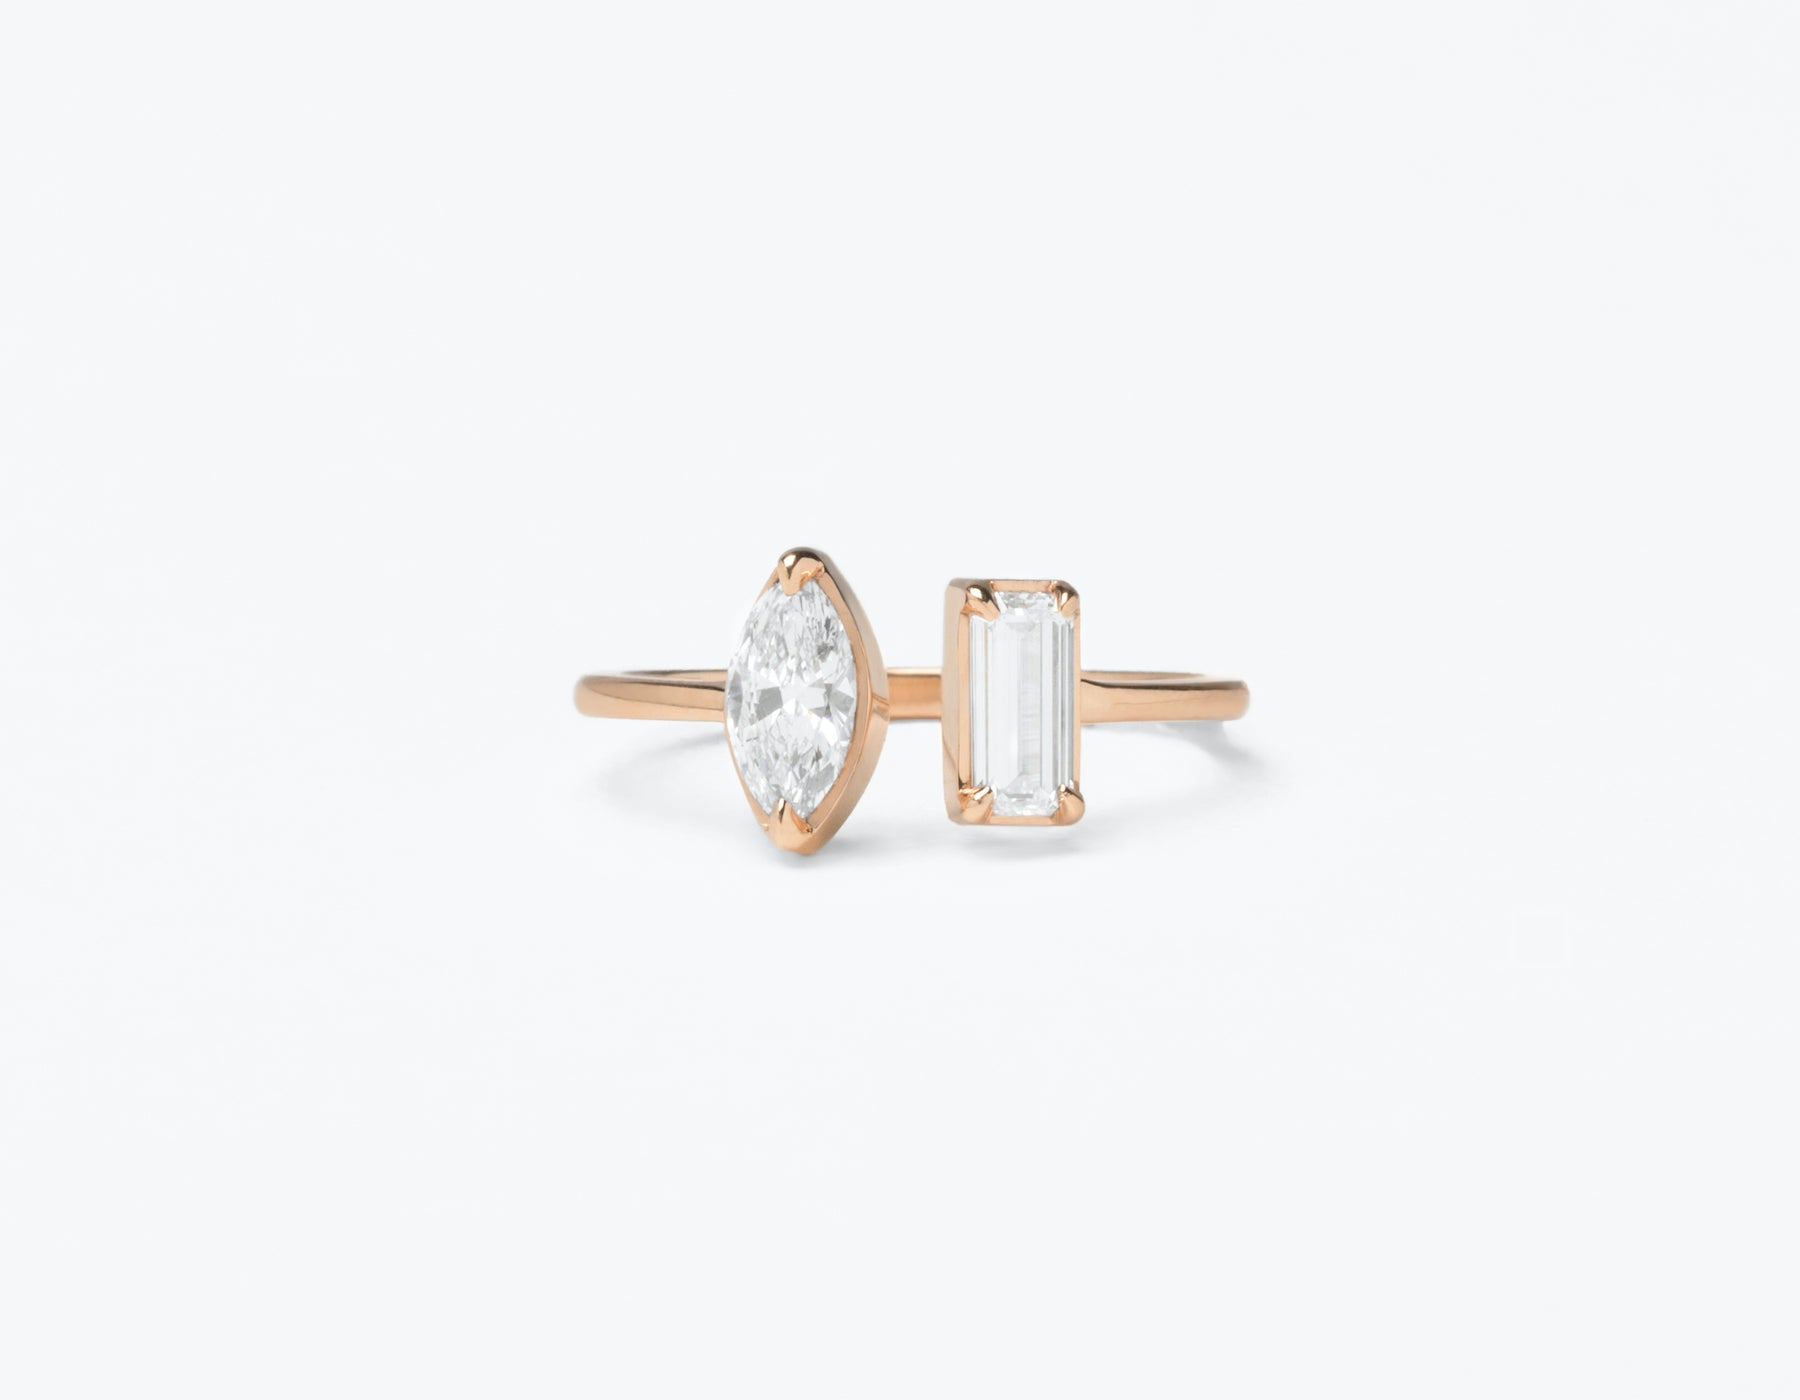 Modern Minimalist 18K solid gold Mix Baguette and Marquise Diamond Cuff Ring Vrai and Oro, 18K Rose Gold